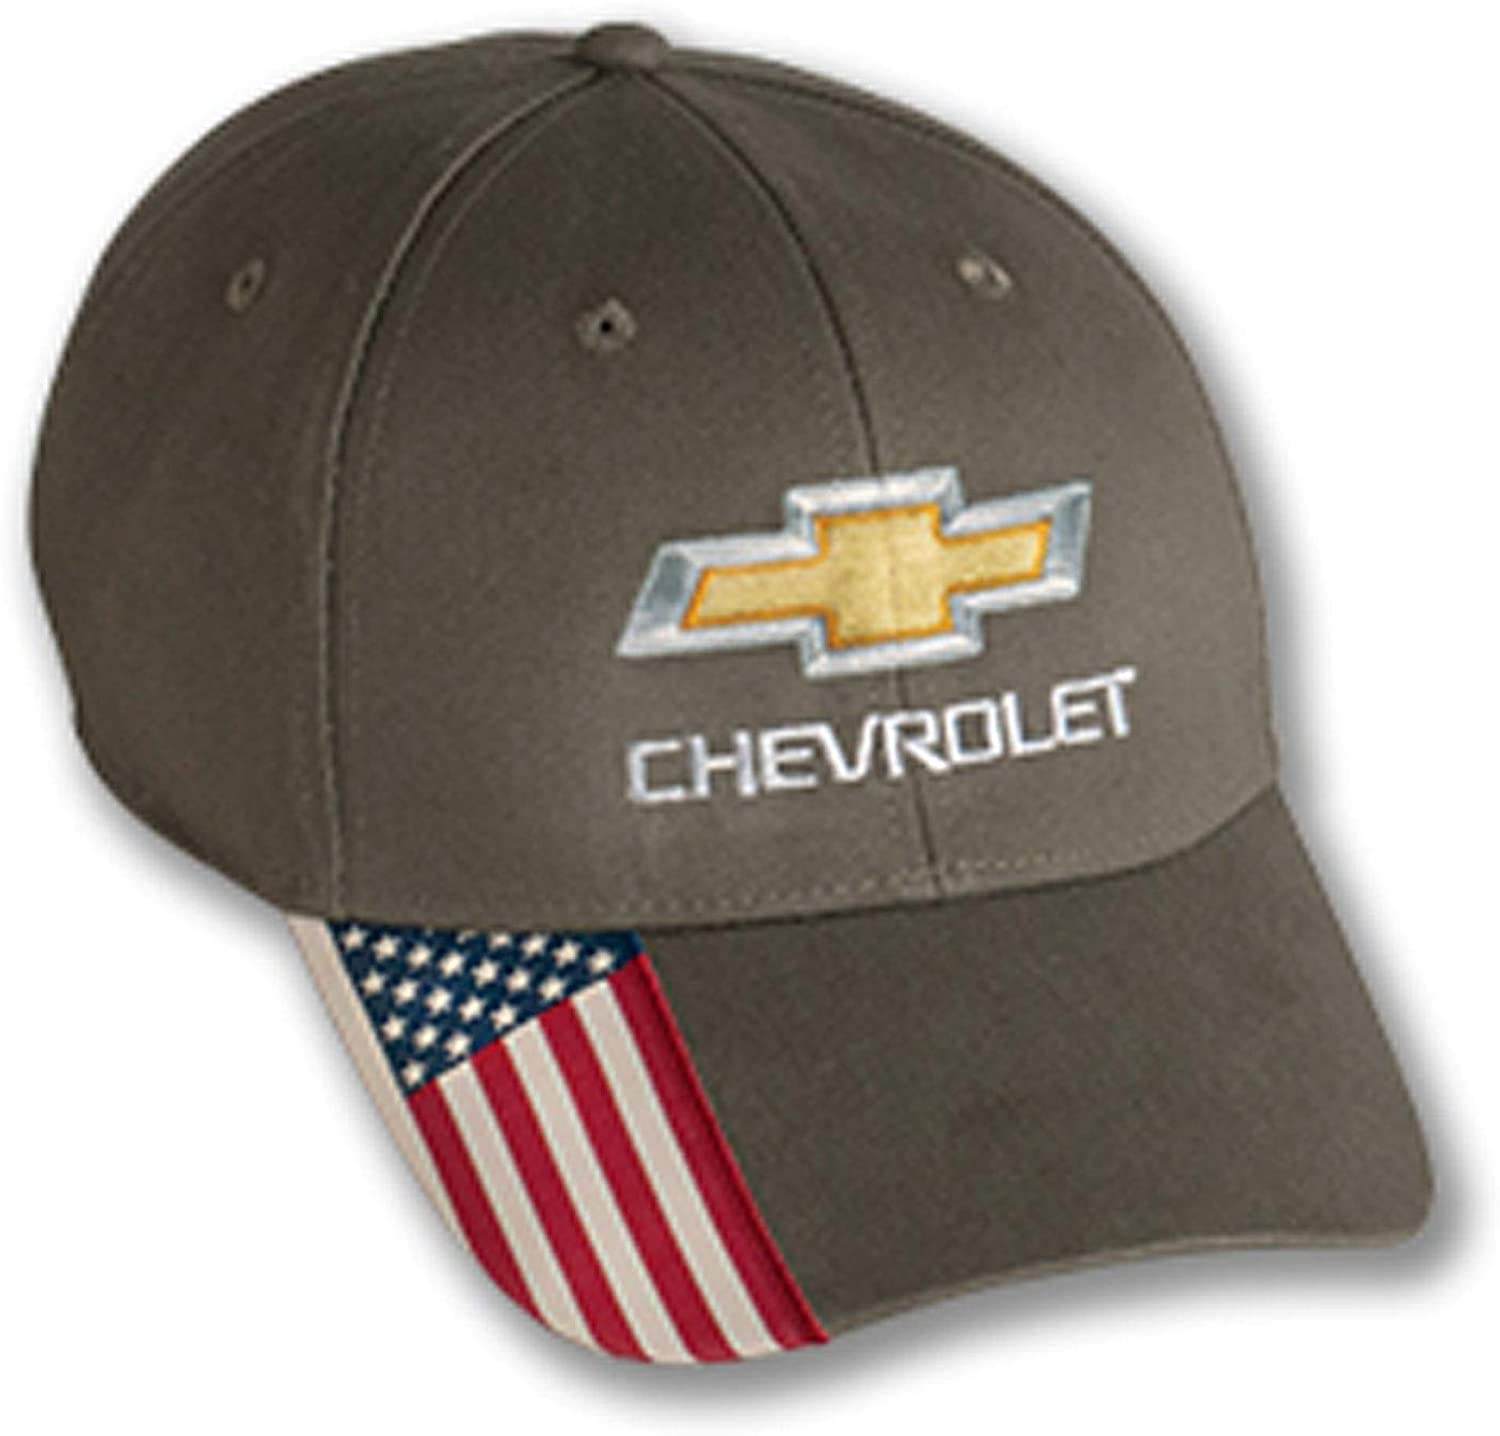 Gregs Automotive Bowtie USA Flag Hat Cap Olive Compatible with Chevrolet Chevy - Bundle with Driving Style Decal